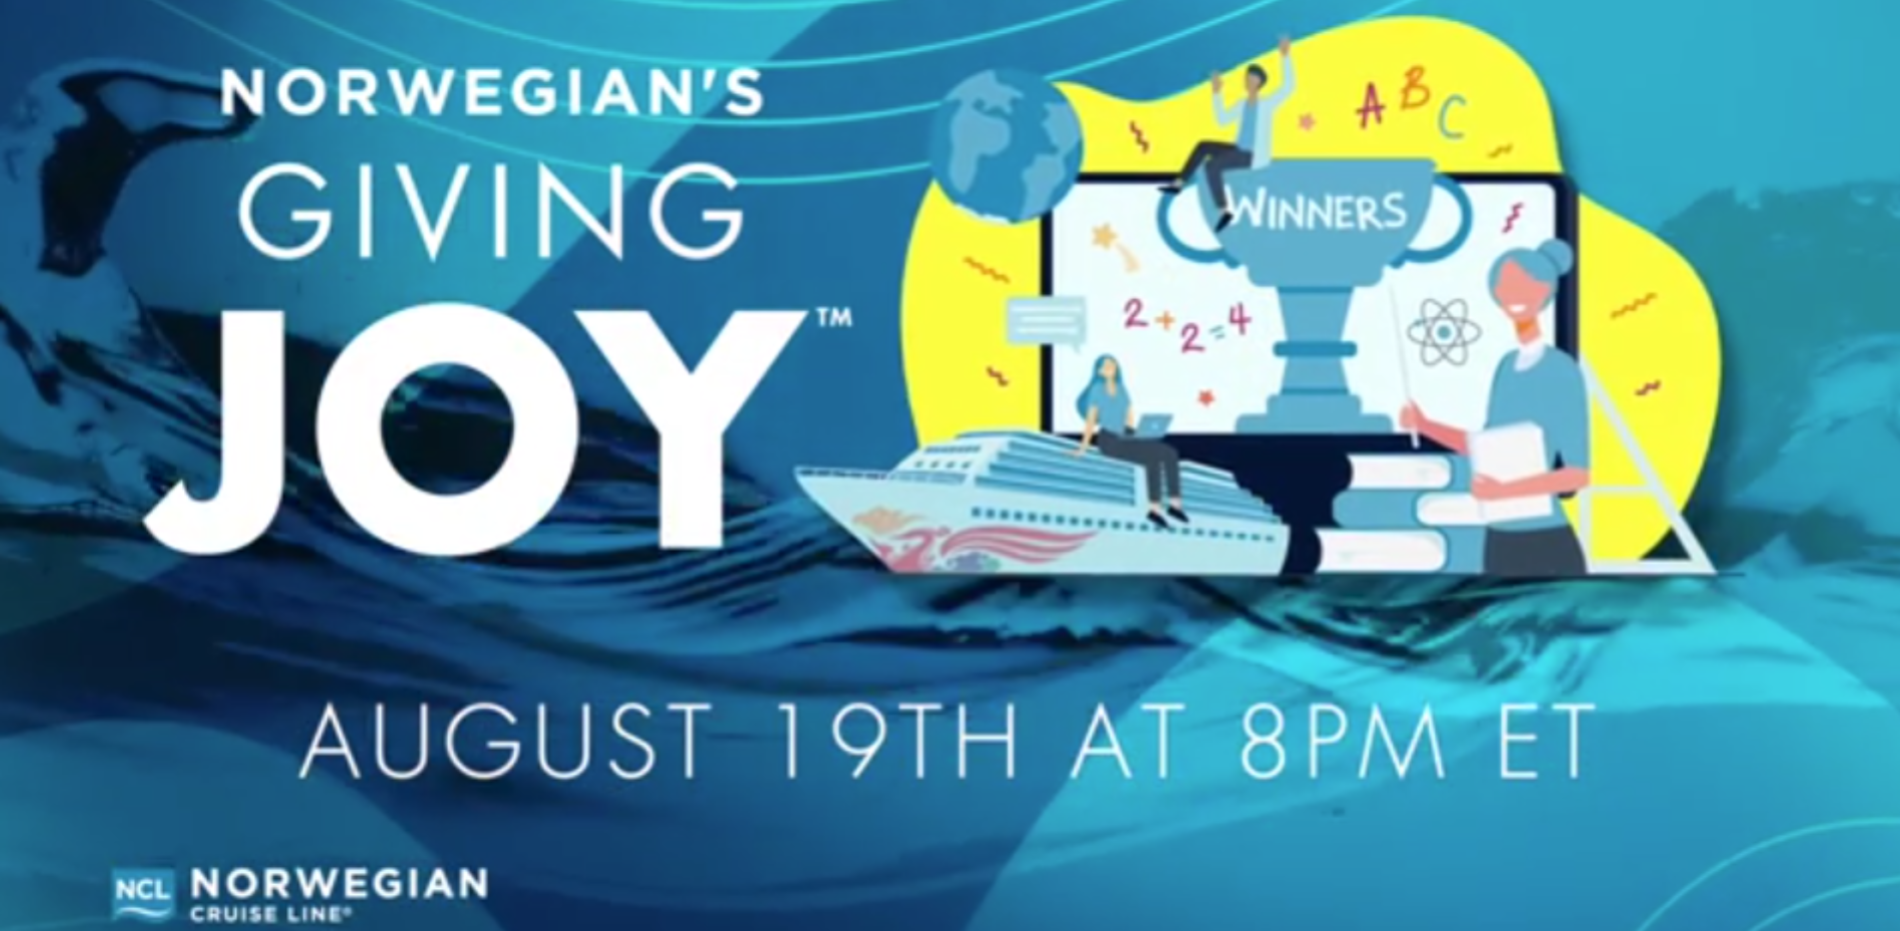 Norwegian Cruise Line is awarding 100 teachers across North America with a free seven-day cruise to celebrate educator's passion for bringing joy to the classroom. Tune in Aug. 19 at 8 p.m. ET at www.NCLGivingJoyLivestreamEvent.com and Facebook to see who will be named the Grand Prize winner and receive $25,000 for his or her school.